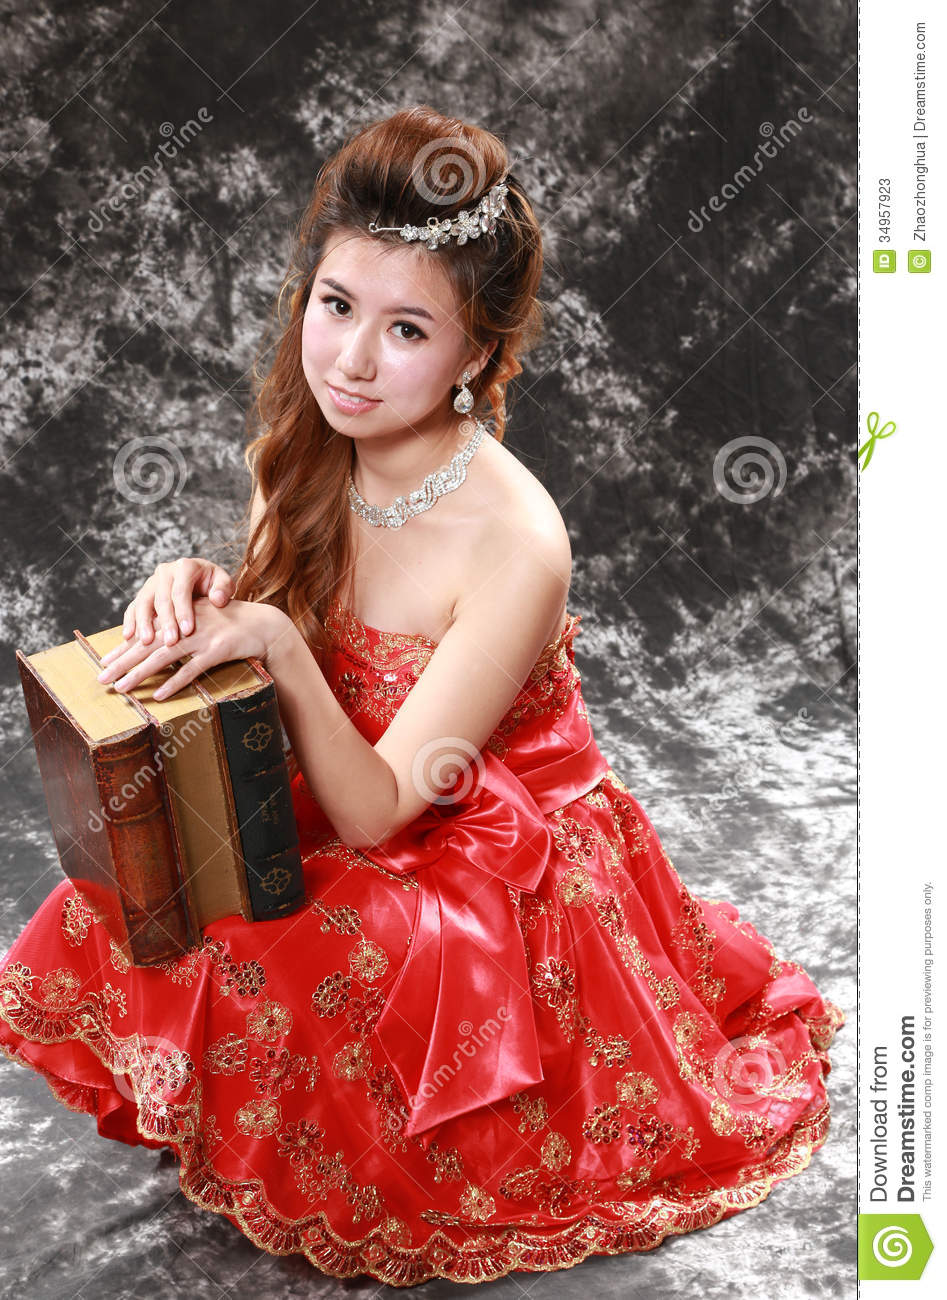 Girl In Red Dress Stock Photos - Image: 34957923